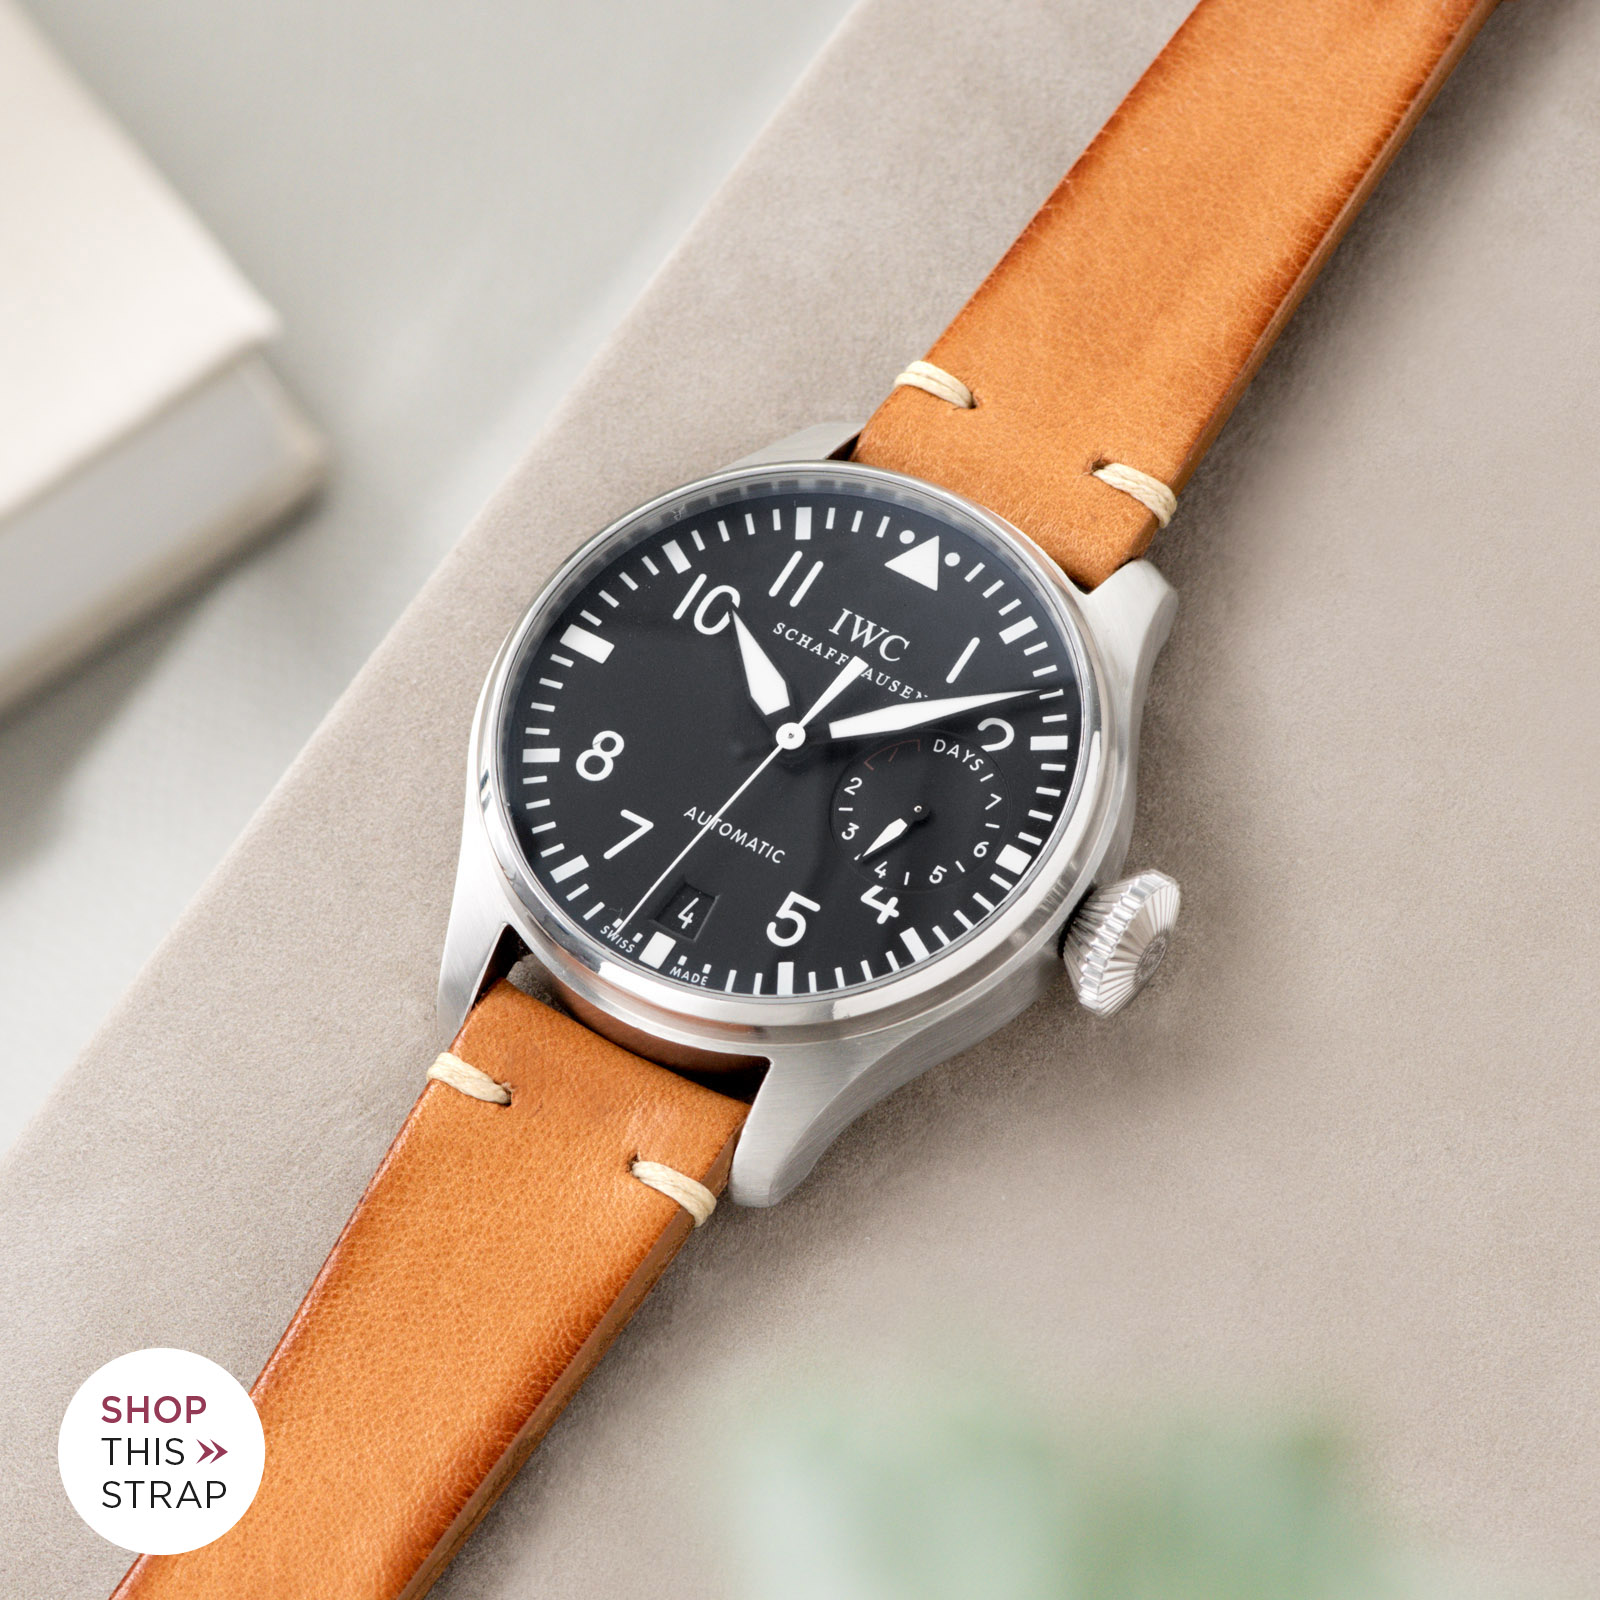 Bulang and Sons_Strap Guide_IWC Big Pilot ref IW5004_Caramel Brown Leather Watch Strap